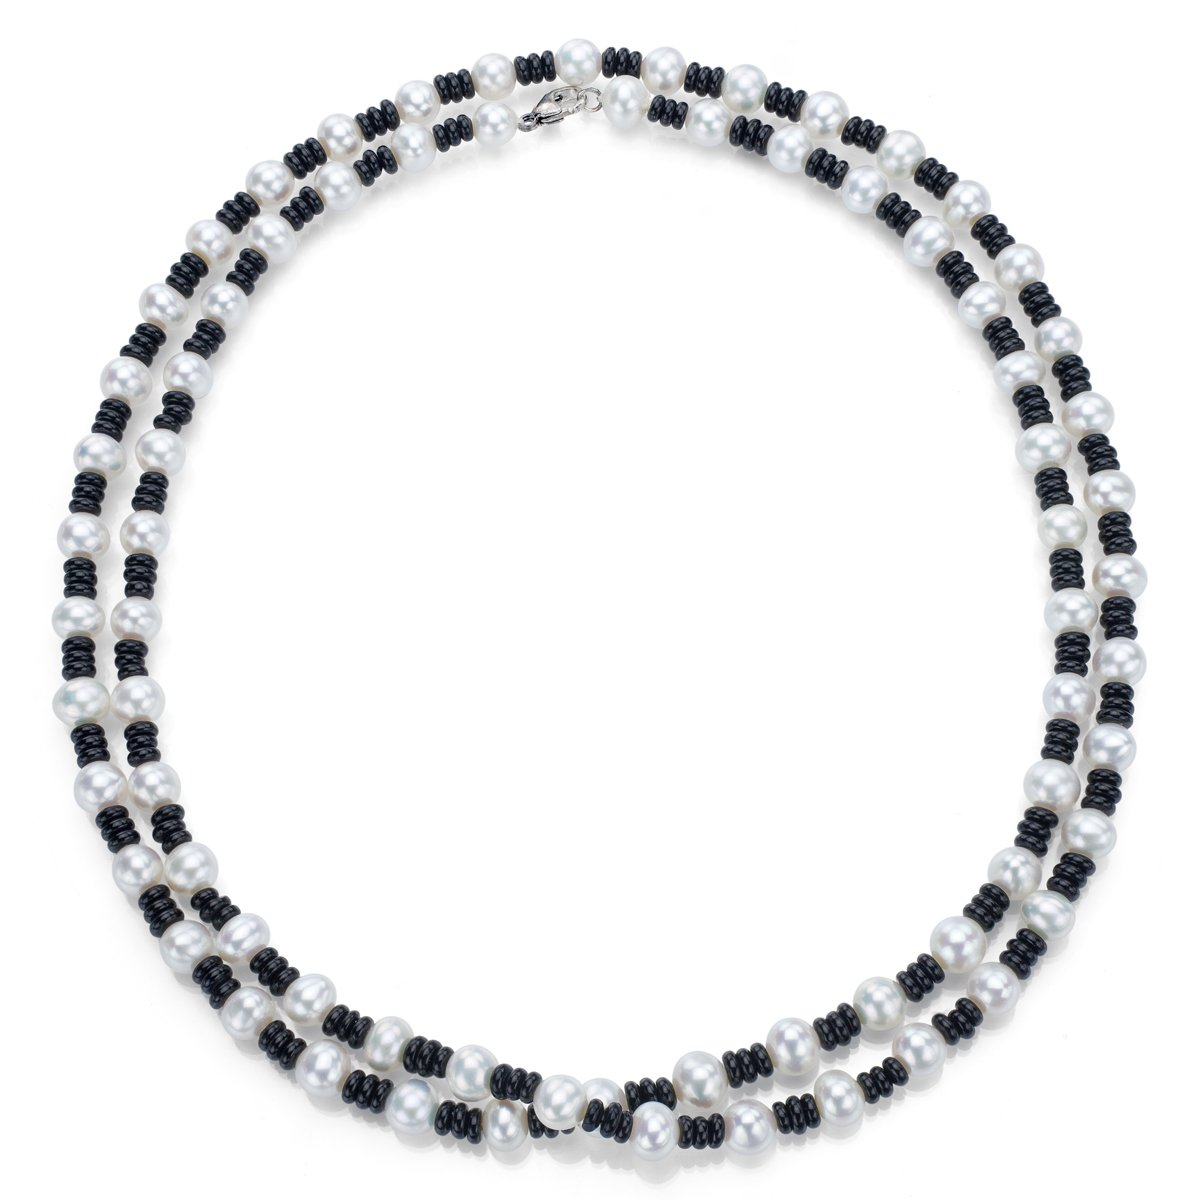 Sterling Silver 7-7.5mm White Freshwater Cultured Pearls and 4mm Simulated Black Onyx Necklace, 36''